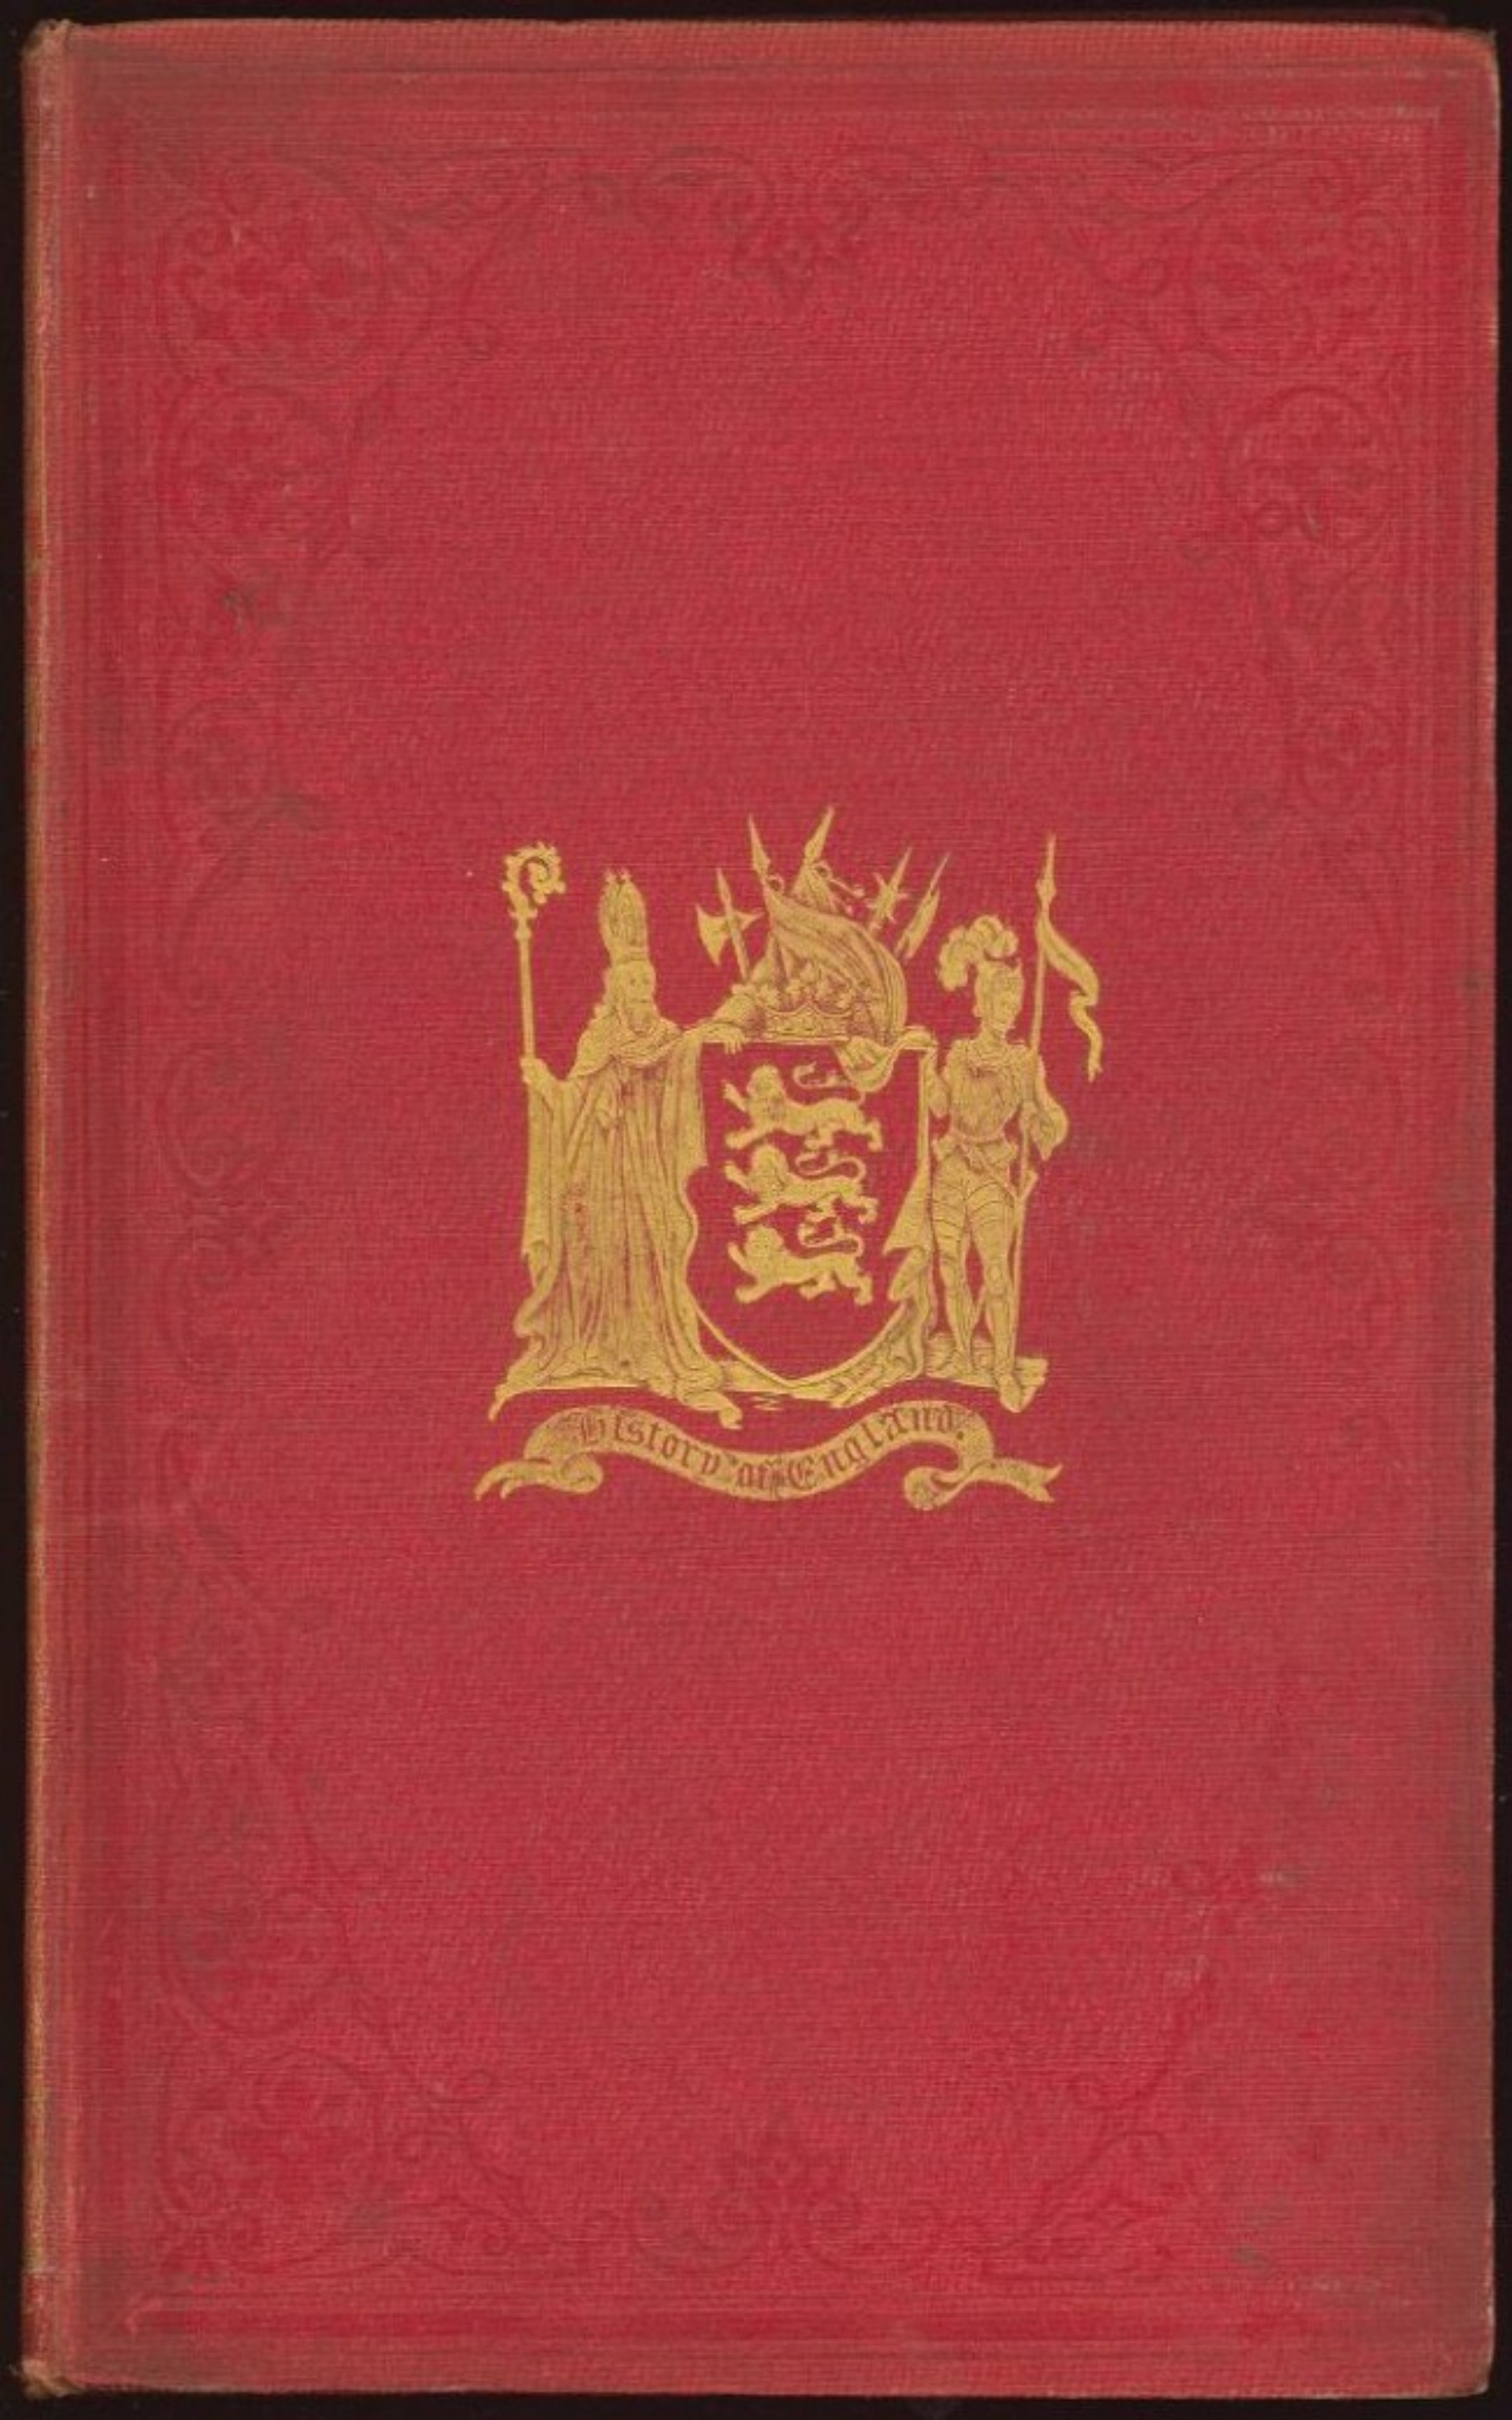 David Hume The History of England david hume the history of england from the invasion of julius caesar to the revolution of 1688 volume 7